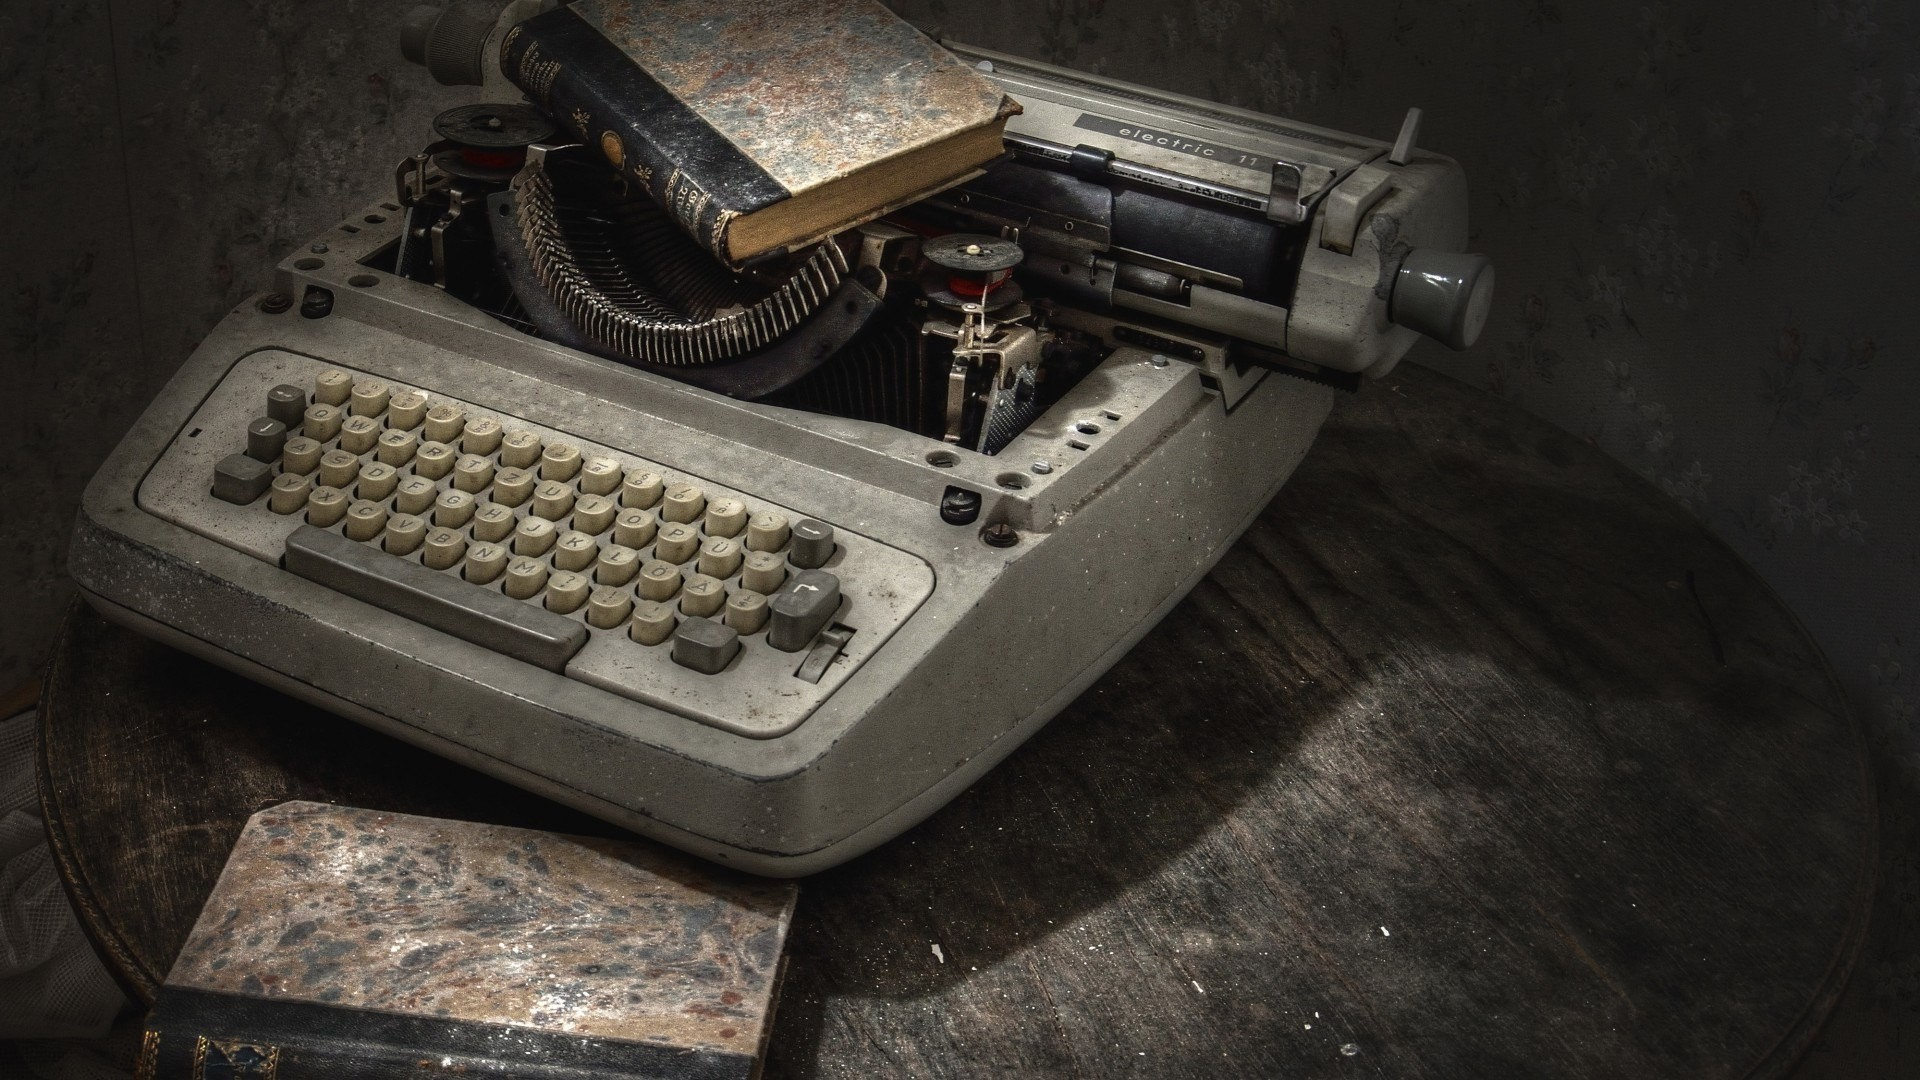 Old Time Car Wallpaper Hd Typewriters Vintage Books Table Walls Old Keyboards